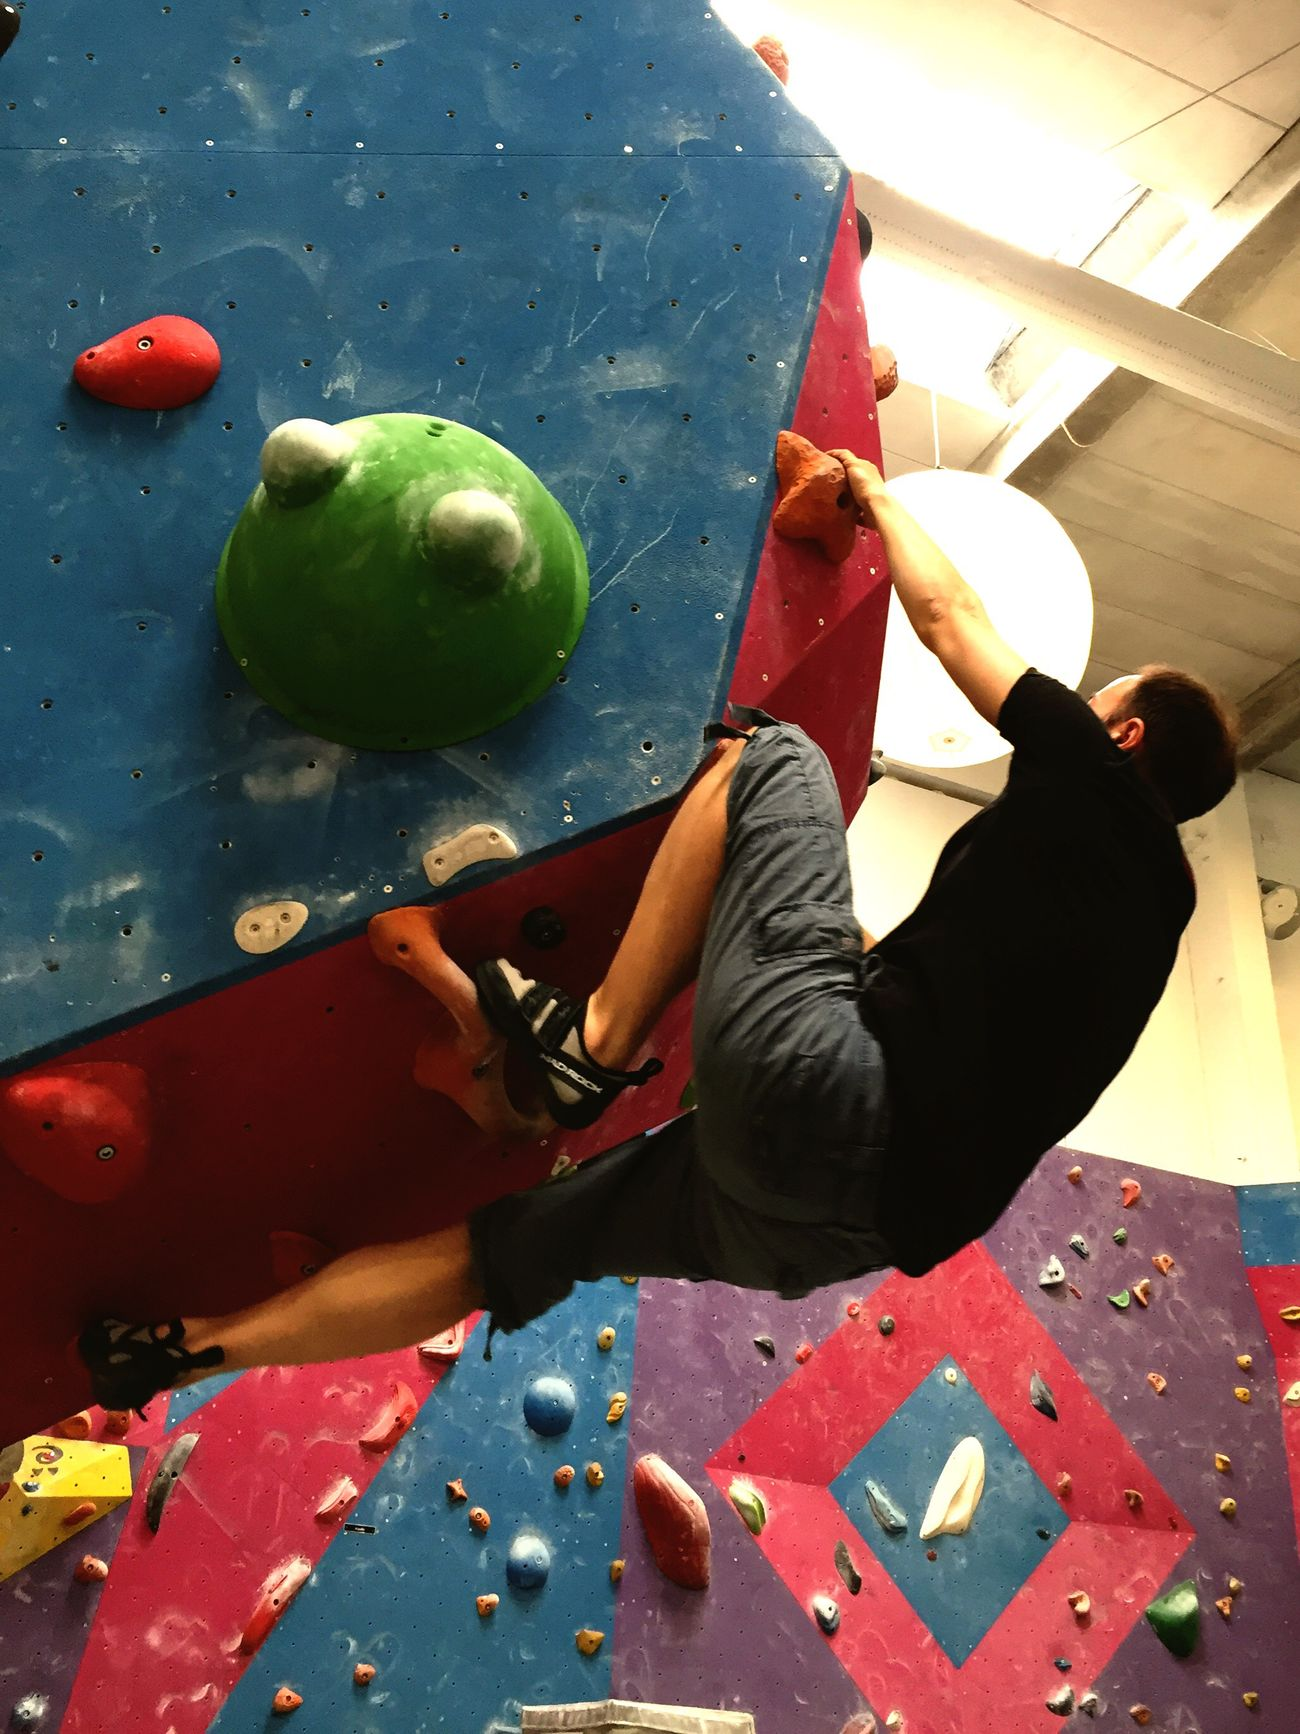 Life 2 Filter IPhoneography Climbing Sport Sports Photography Escalade Effort That's Me Blocks